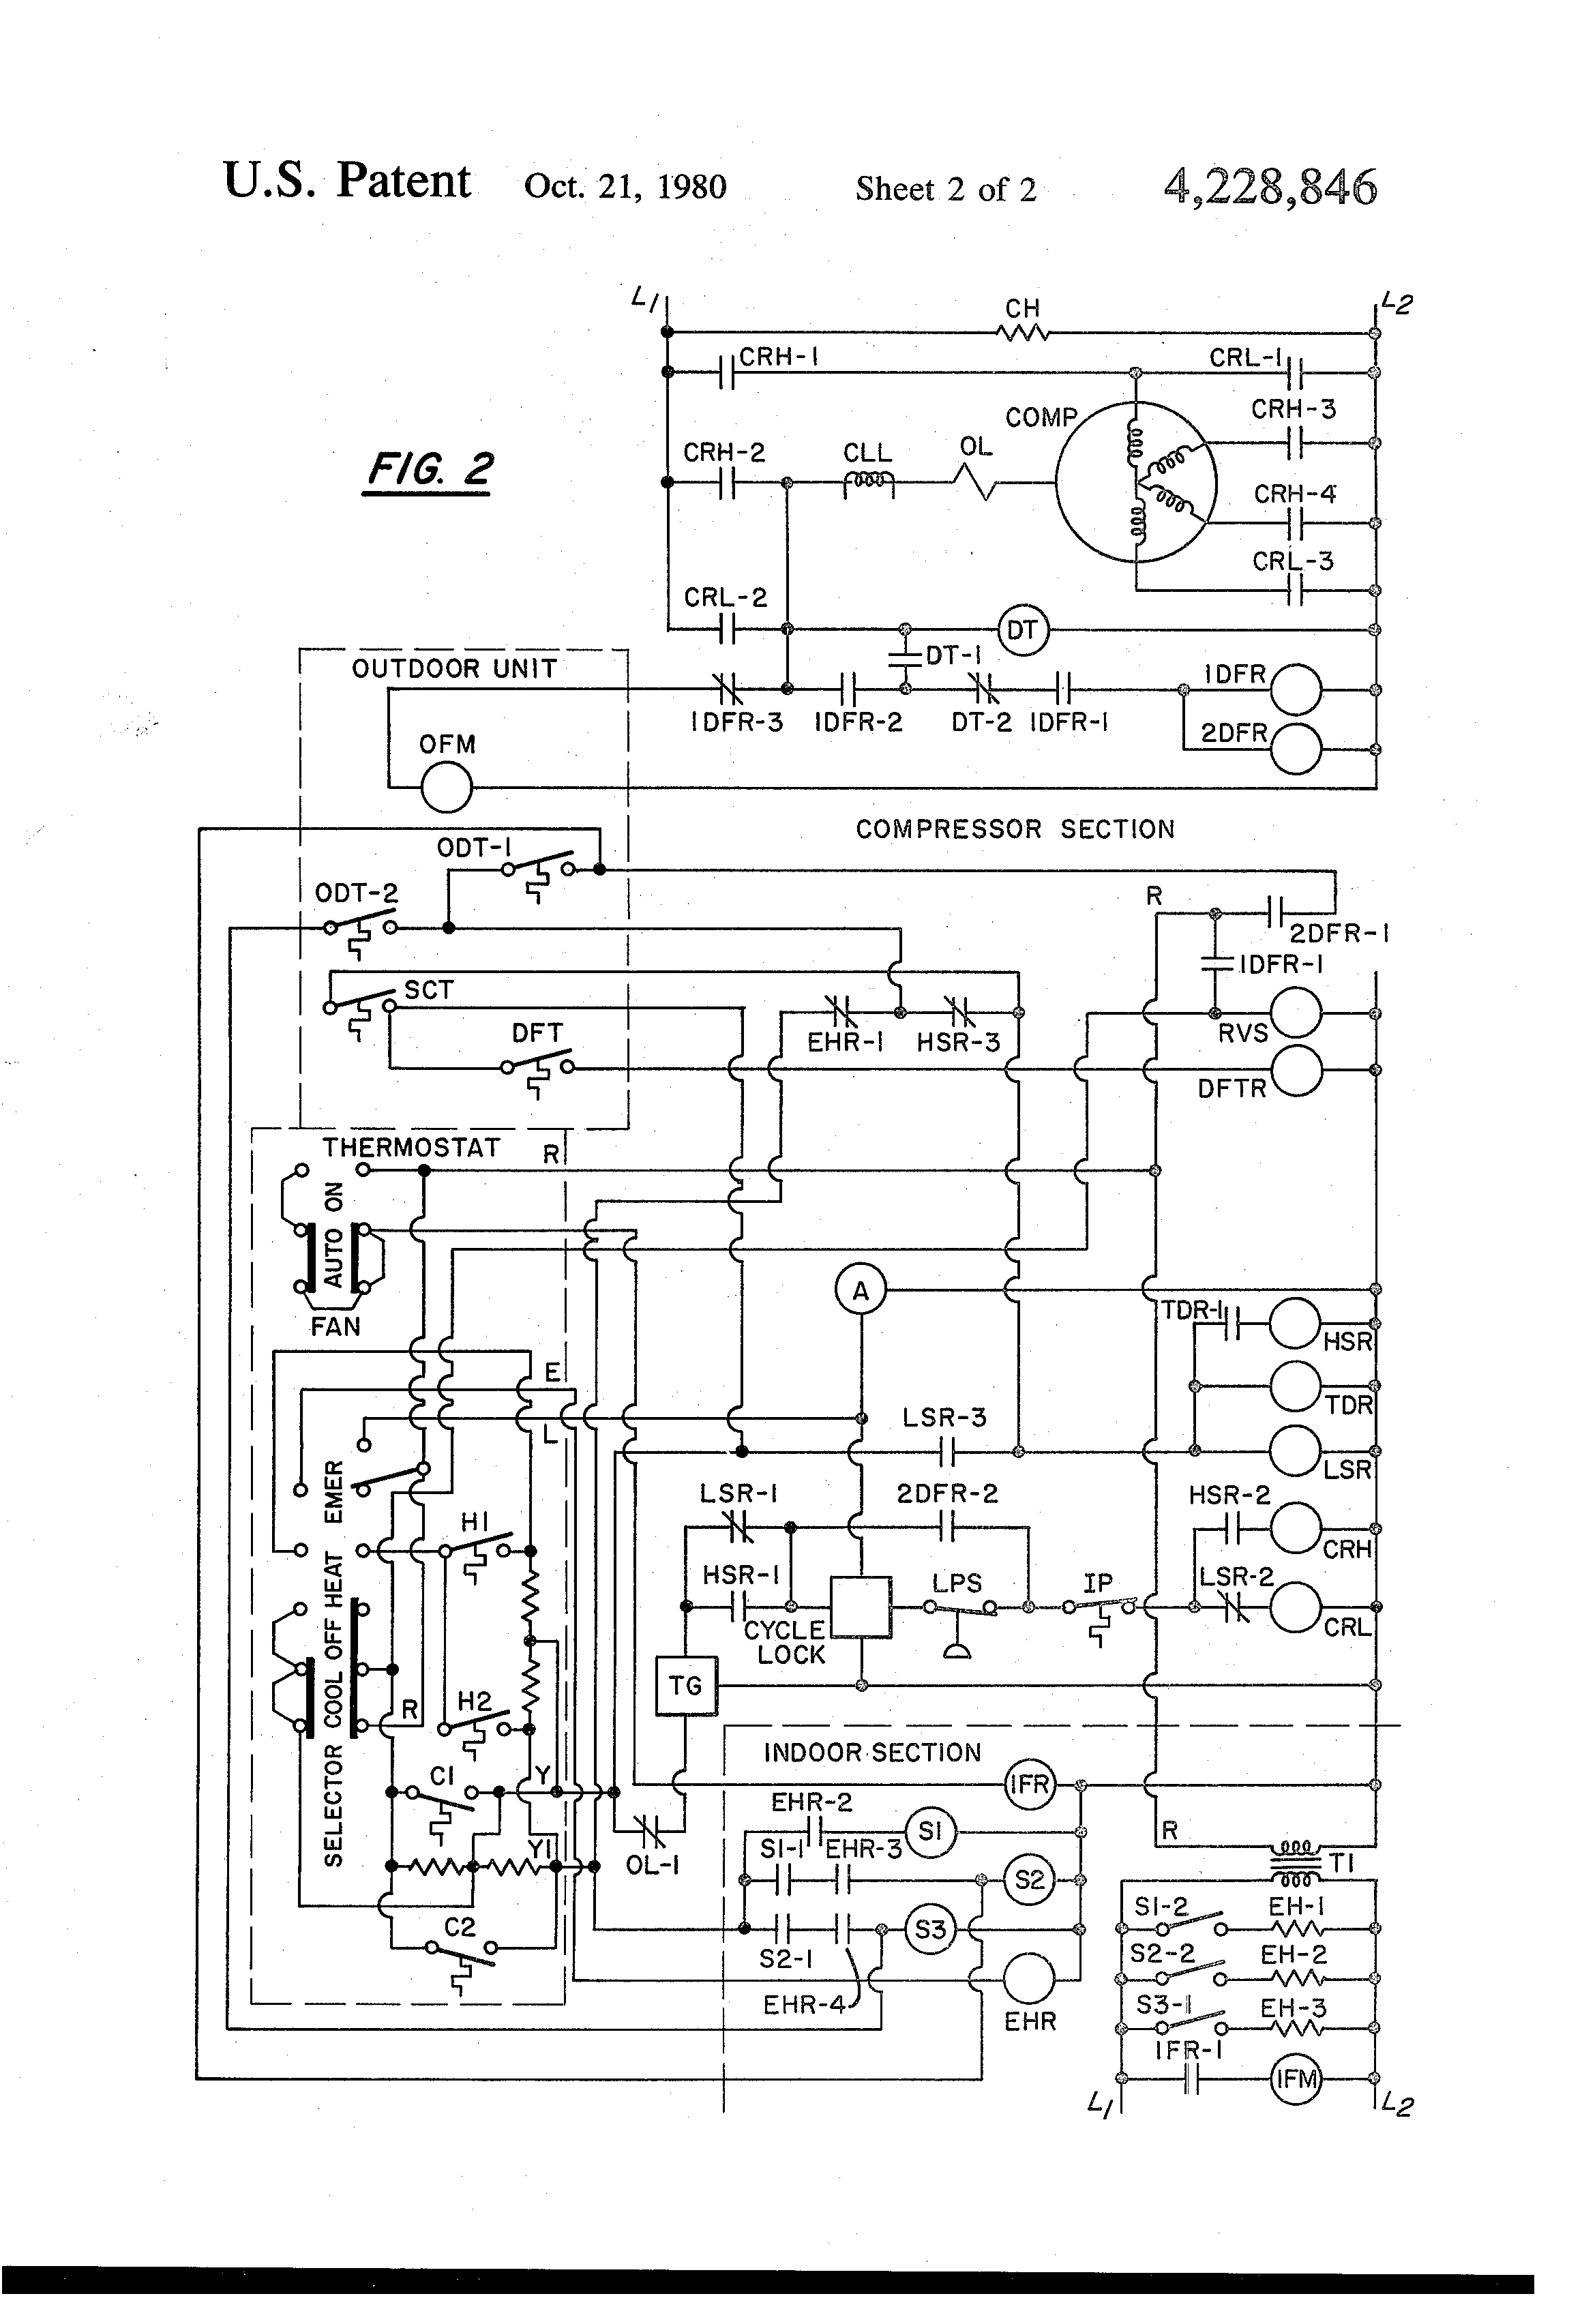 Storage Heaters Wiring Diagram Page 2 And Schematics Electric Central Heating Unique Dayton Unit Heater Sketch Electrical Circuit